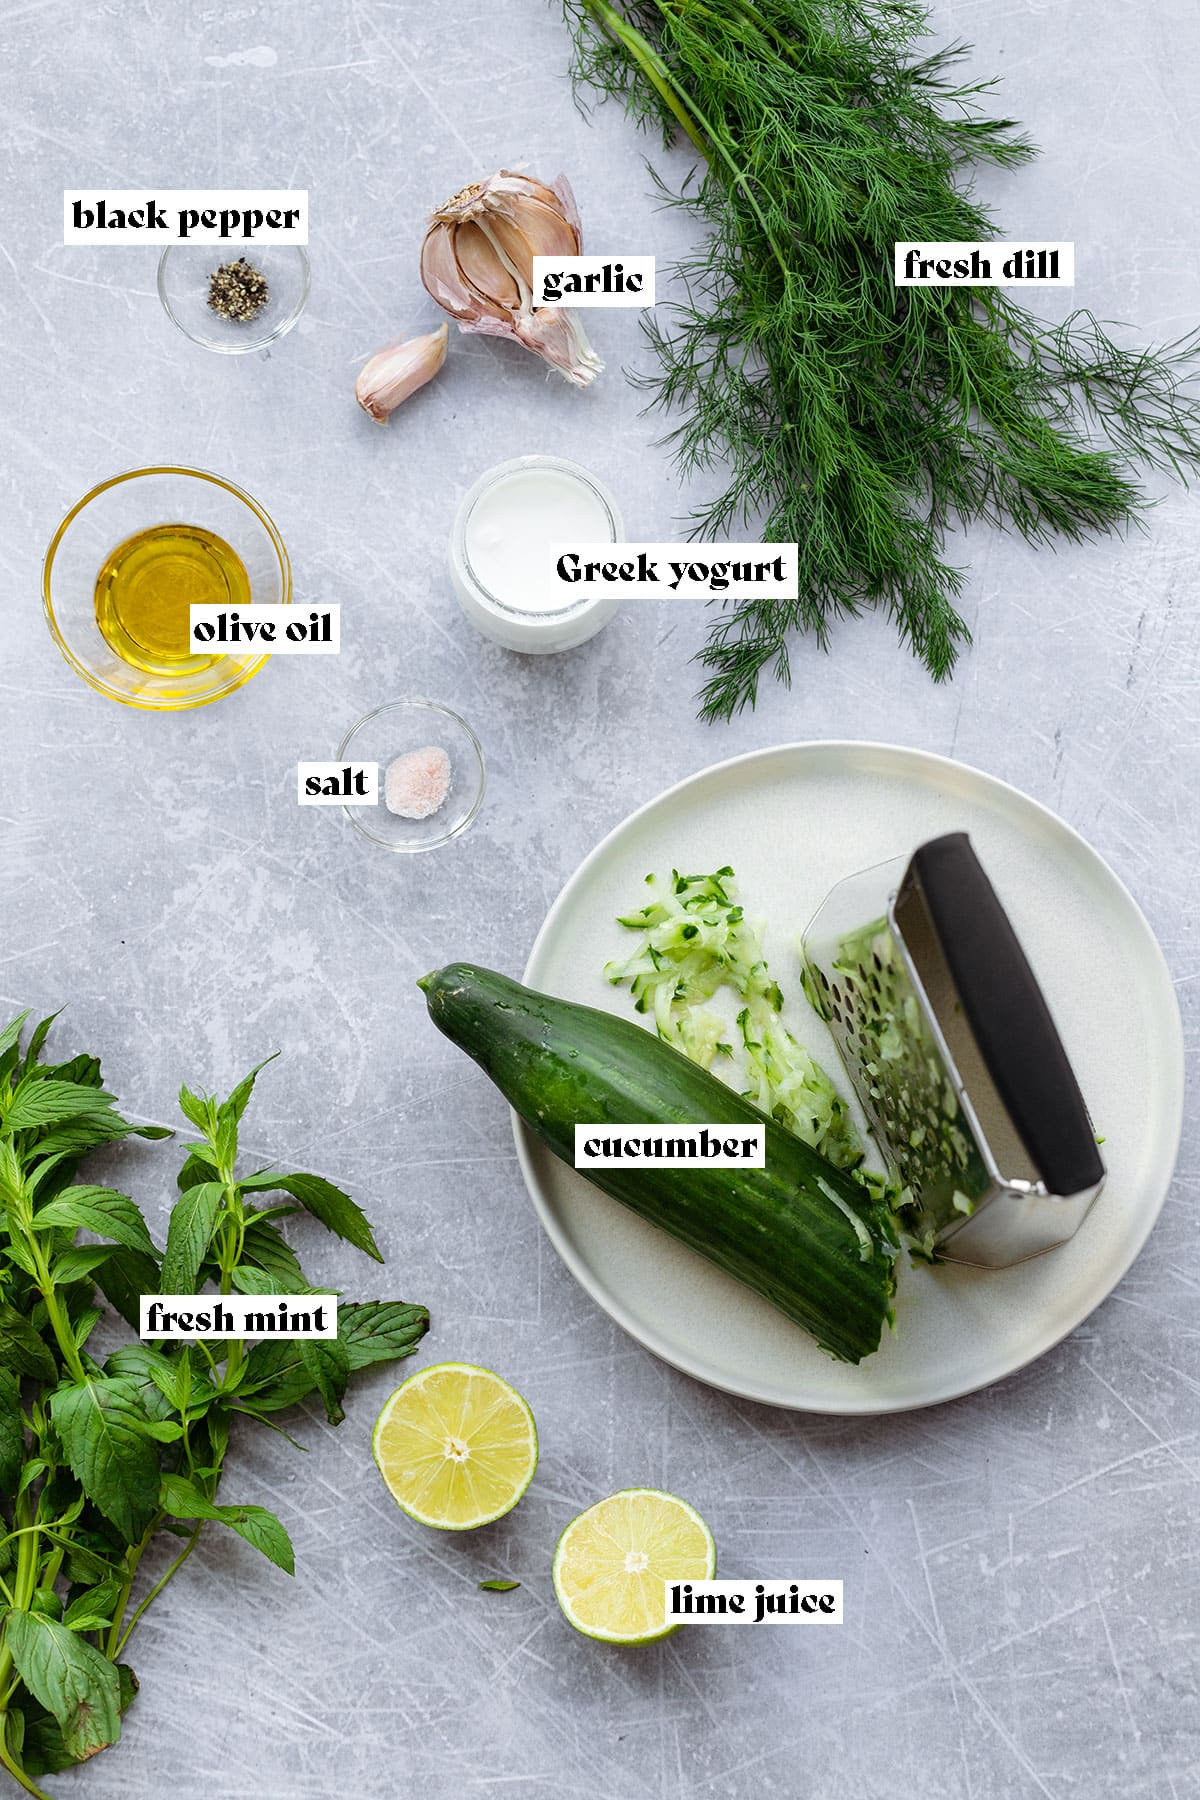 A photo of all the tzatziki ingredients laid out on a metal background. Fresh dill, mint, cucumber, limes, olive oil, greek yogurt, garlic, black pepper, and salt.